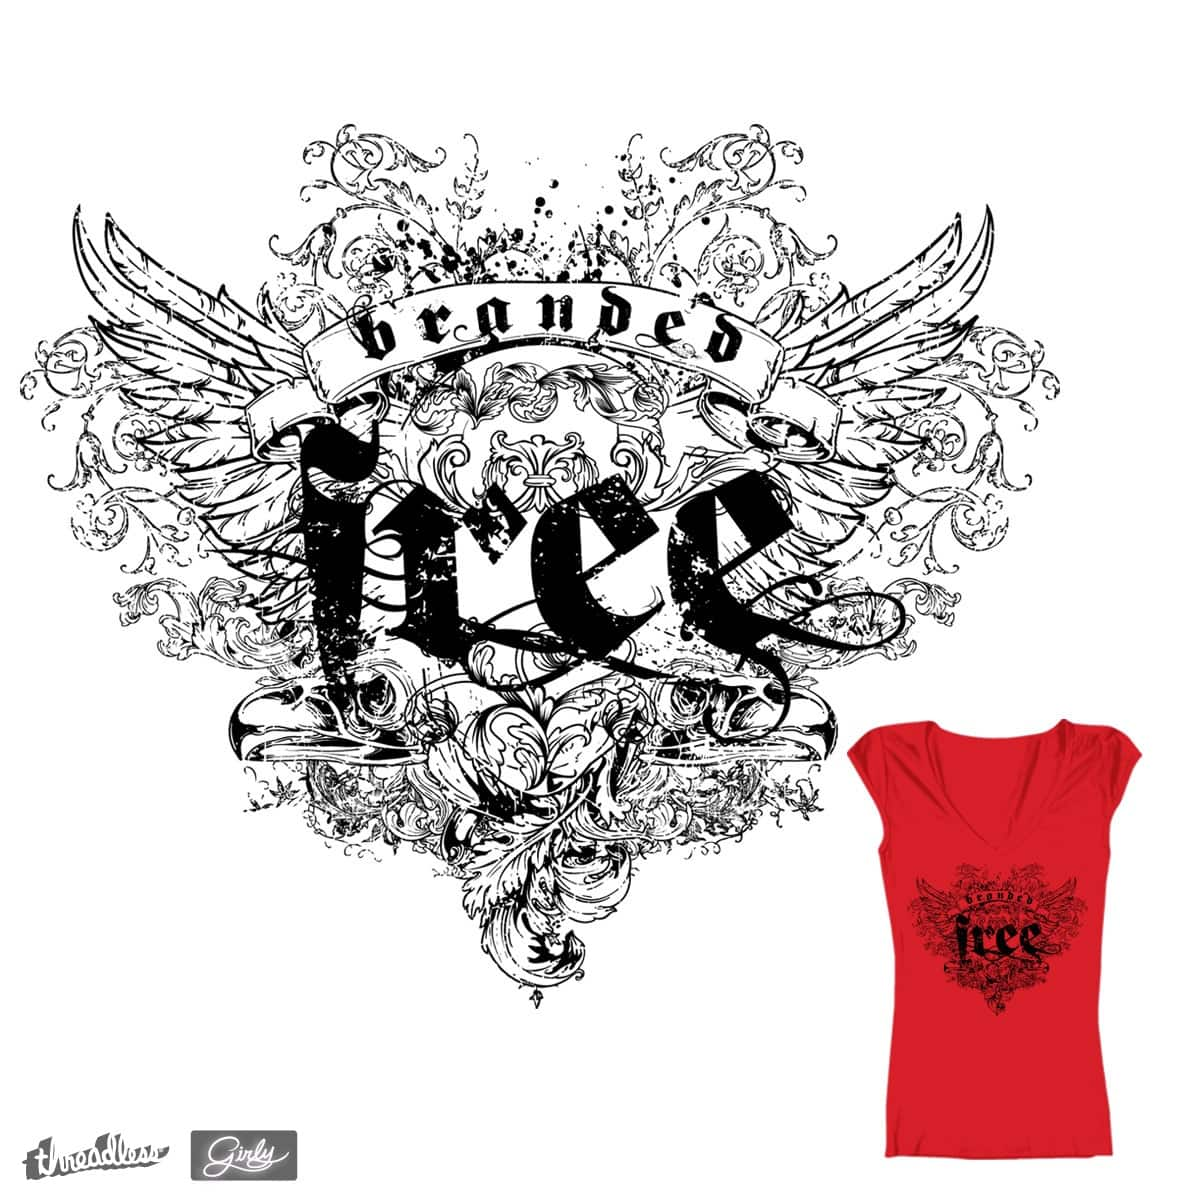 FREE by branded123 on Threadless